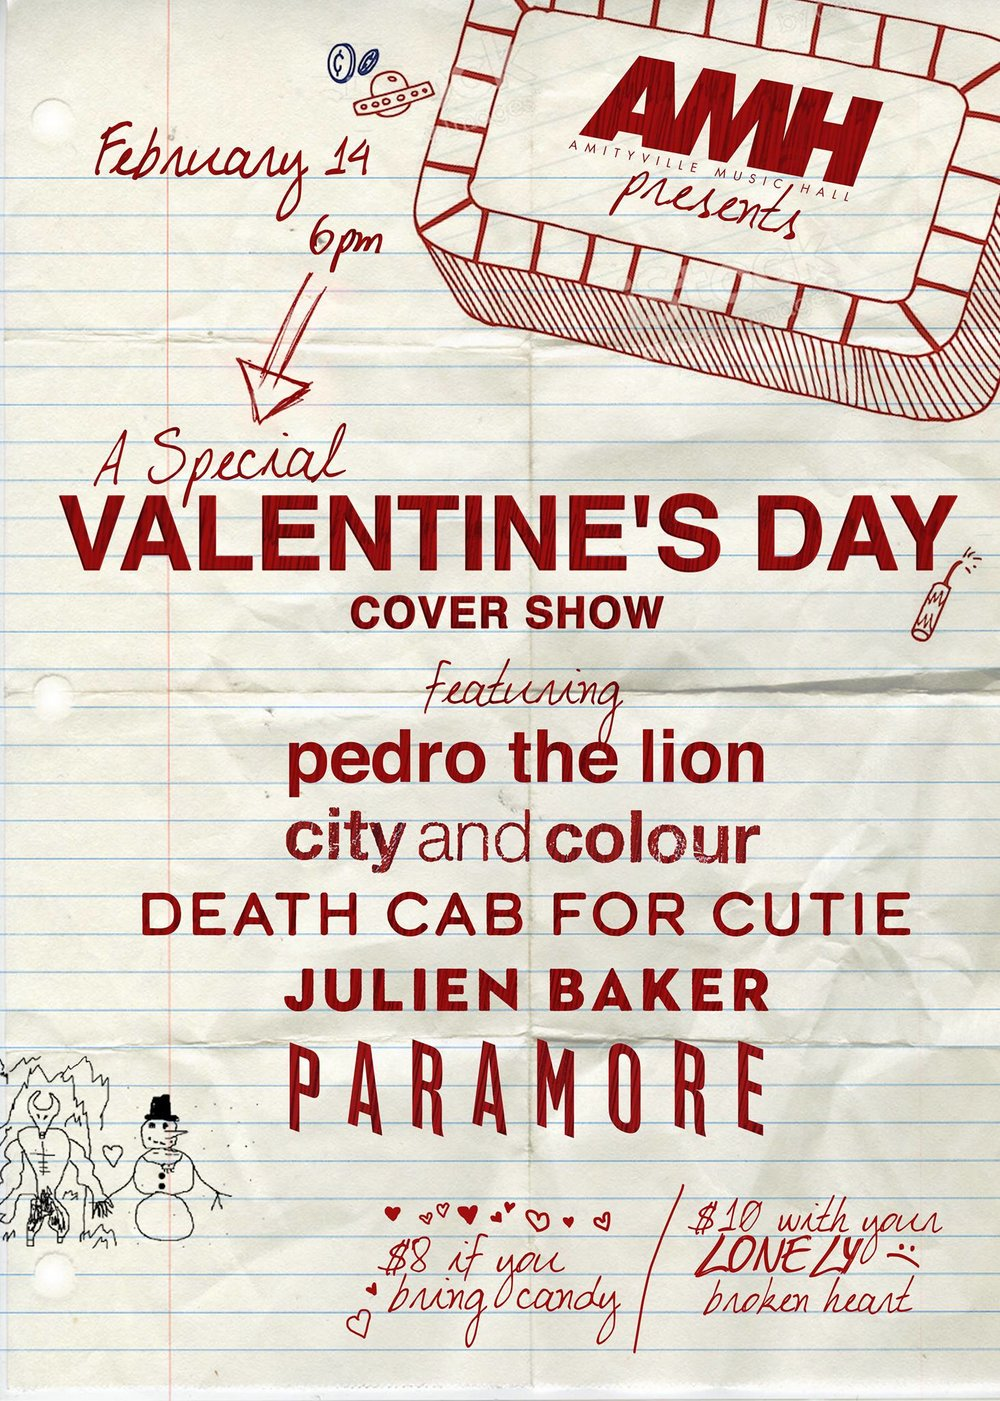 A Special Valentine's Day Cover Show -  Pedro The Lion (Amityville Music Hall staff)City and Colour (Heavy Tides)Death Cab for Cutie (Staleworth + friends)Julien Baker (Sal Salamone + Bee Asaro making you cry)Paramore (Megaweapon. + friends)$8+16+